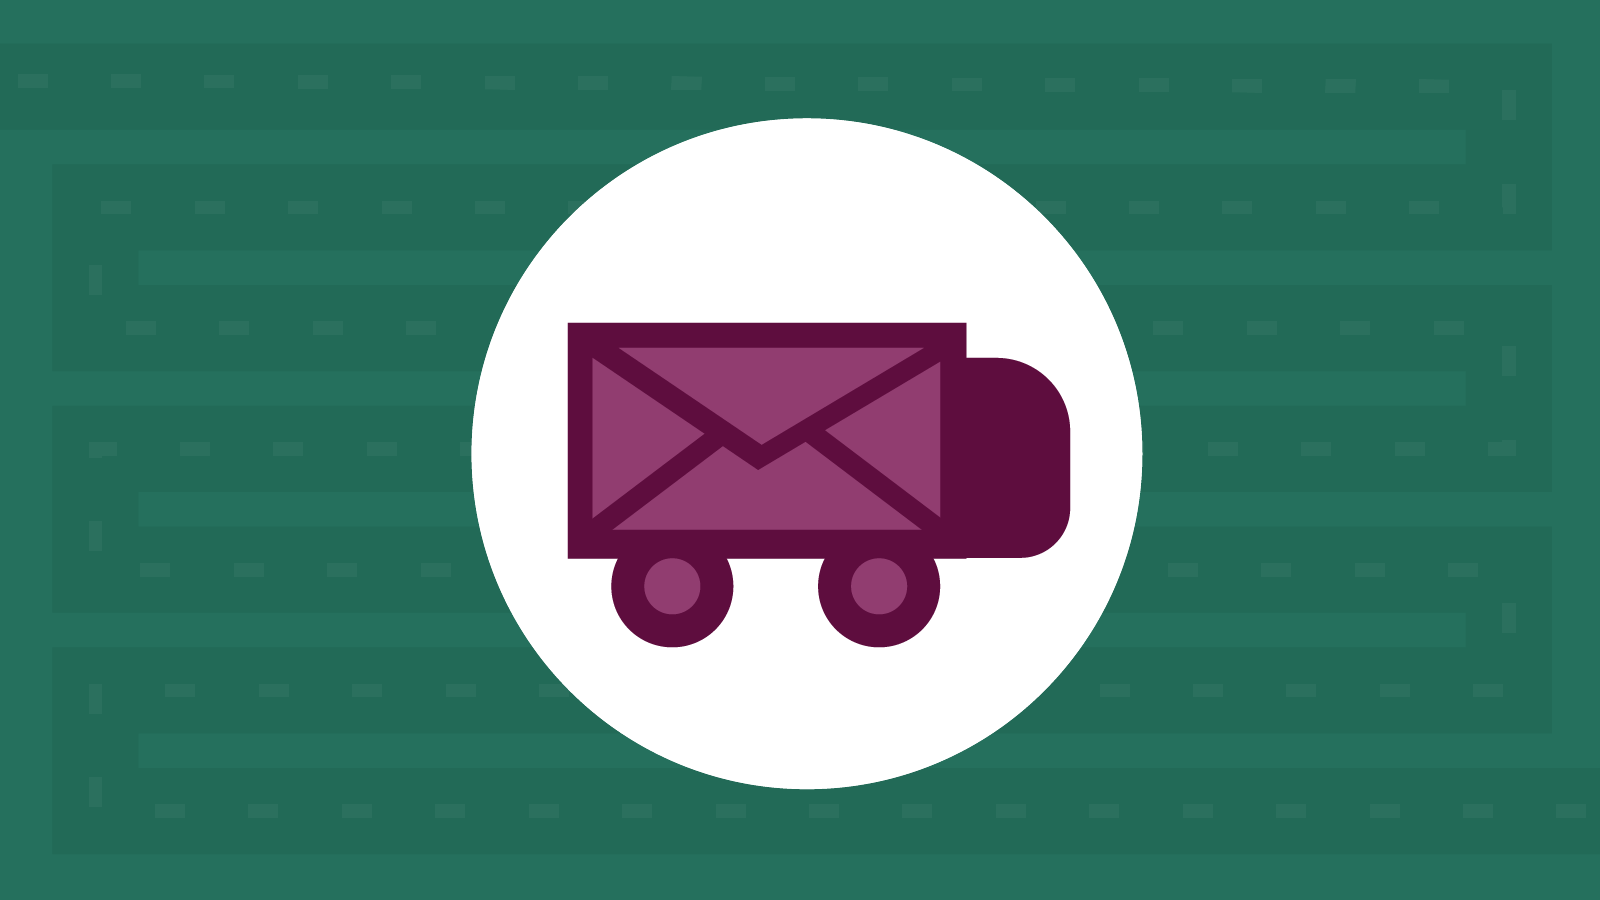 purple email envelope with wheels on the road to BIMI